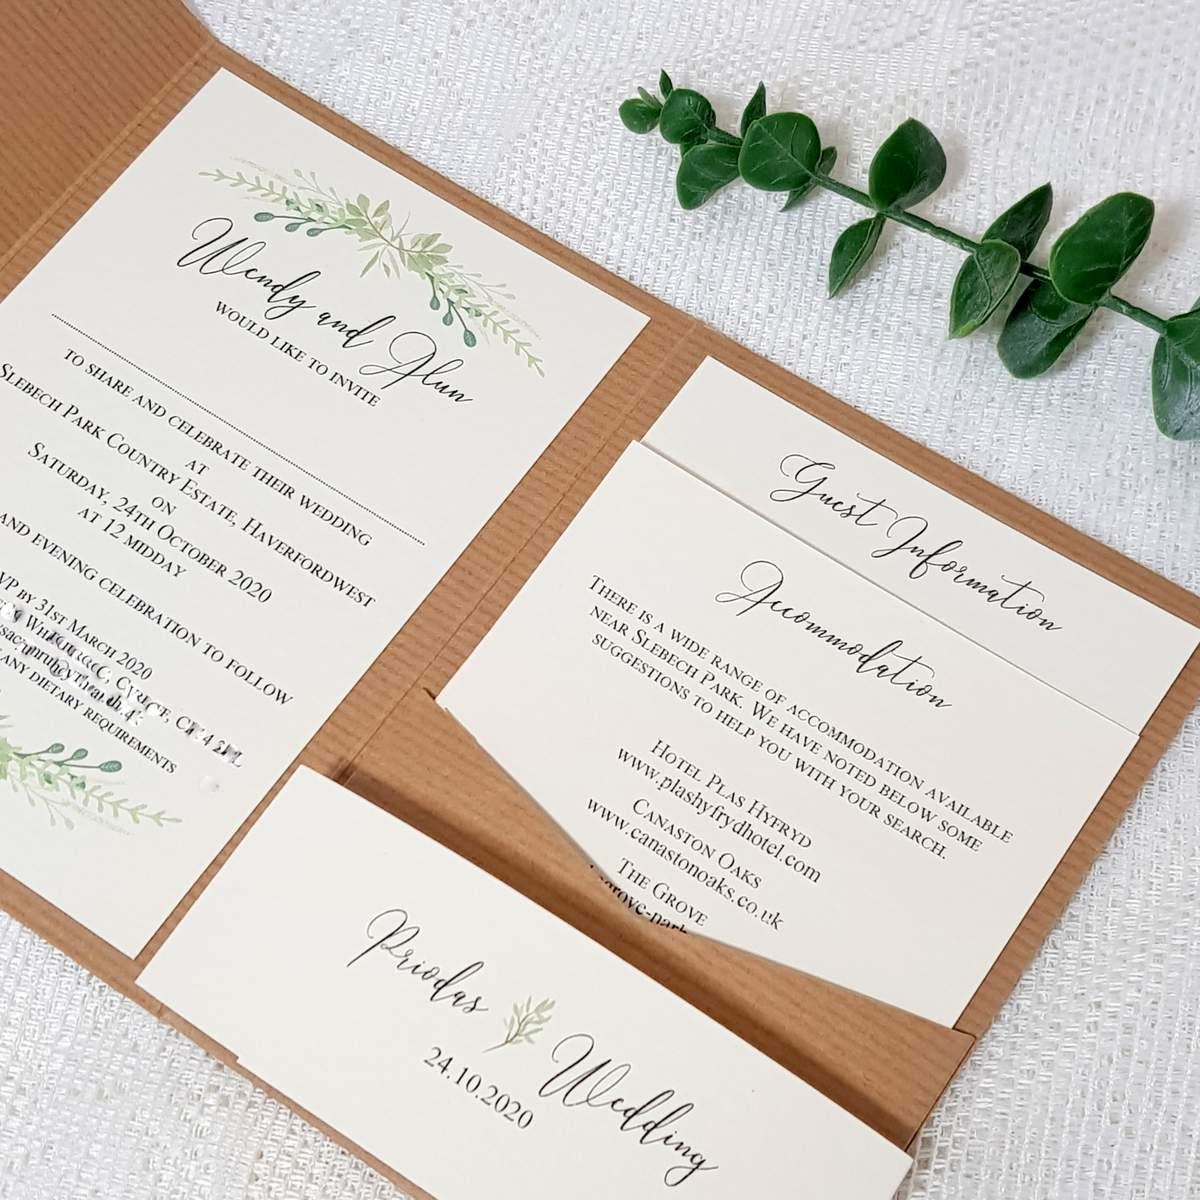 A rustic kraft card pocketgfold style wedding invitation with recycled crema card inserts and a pretty greenery design